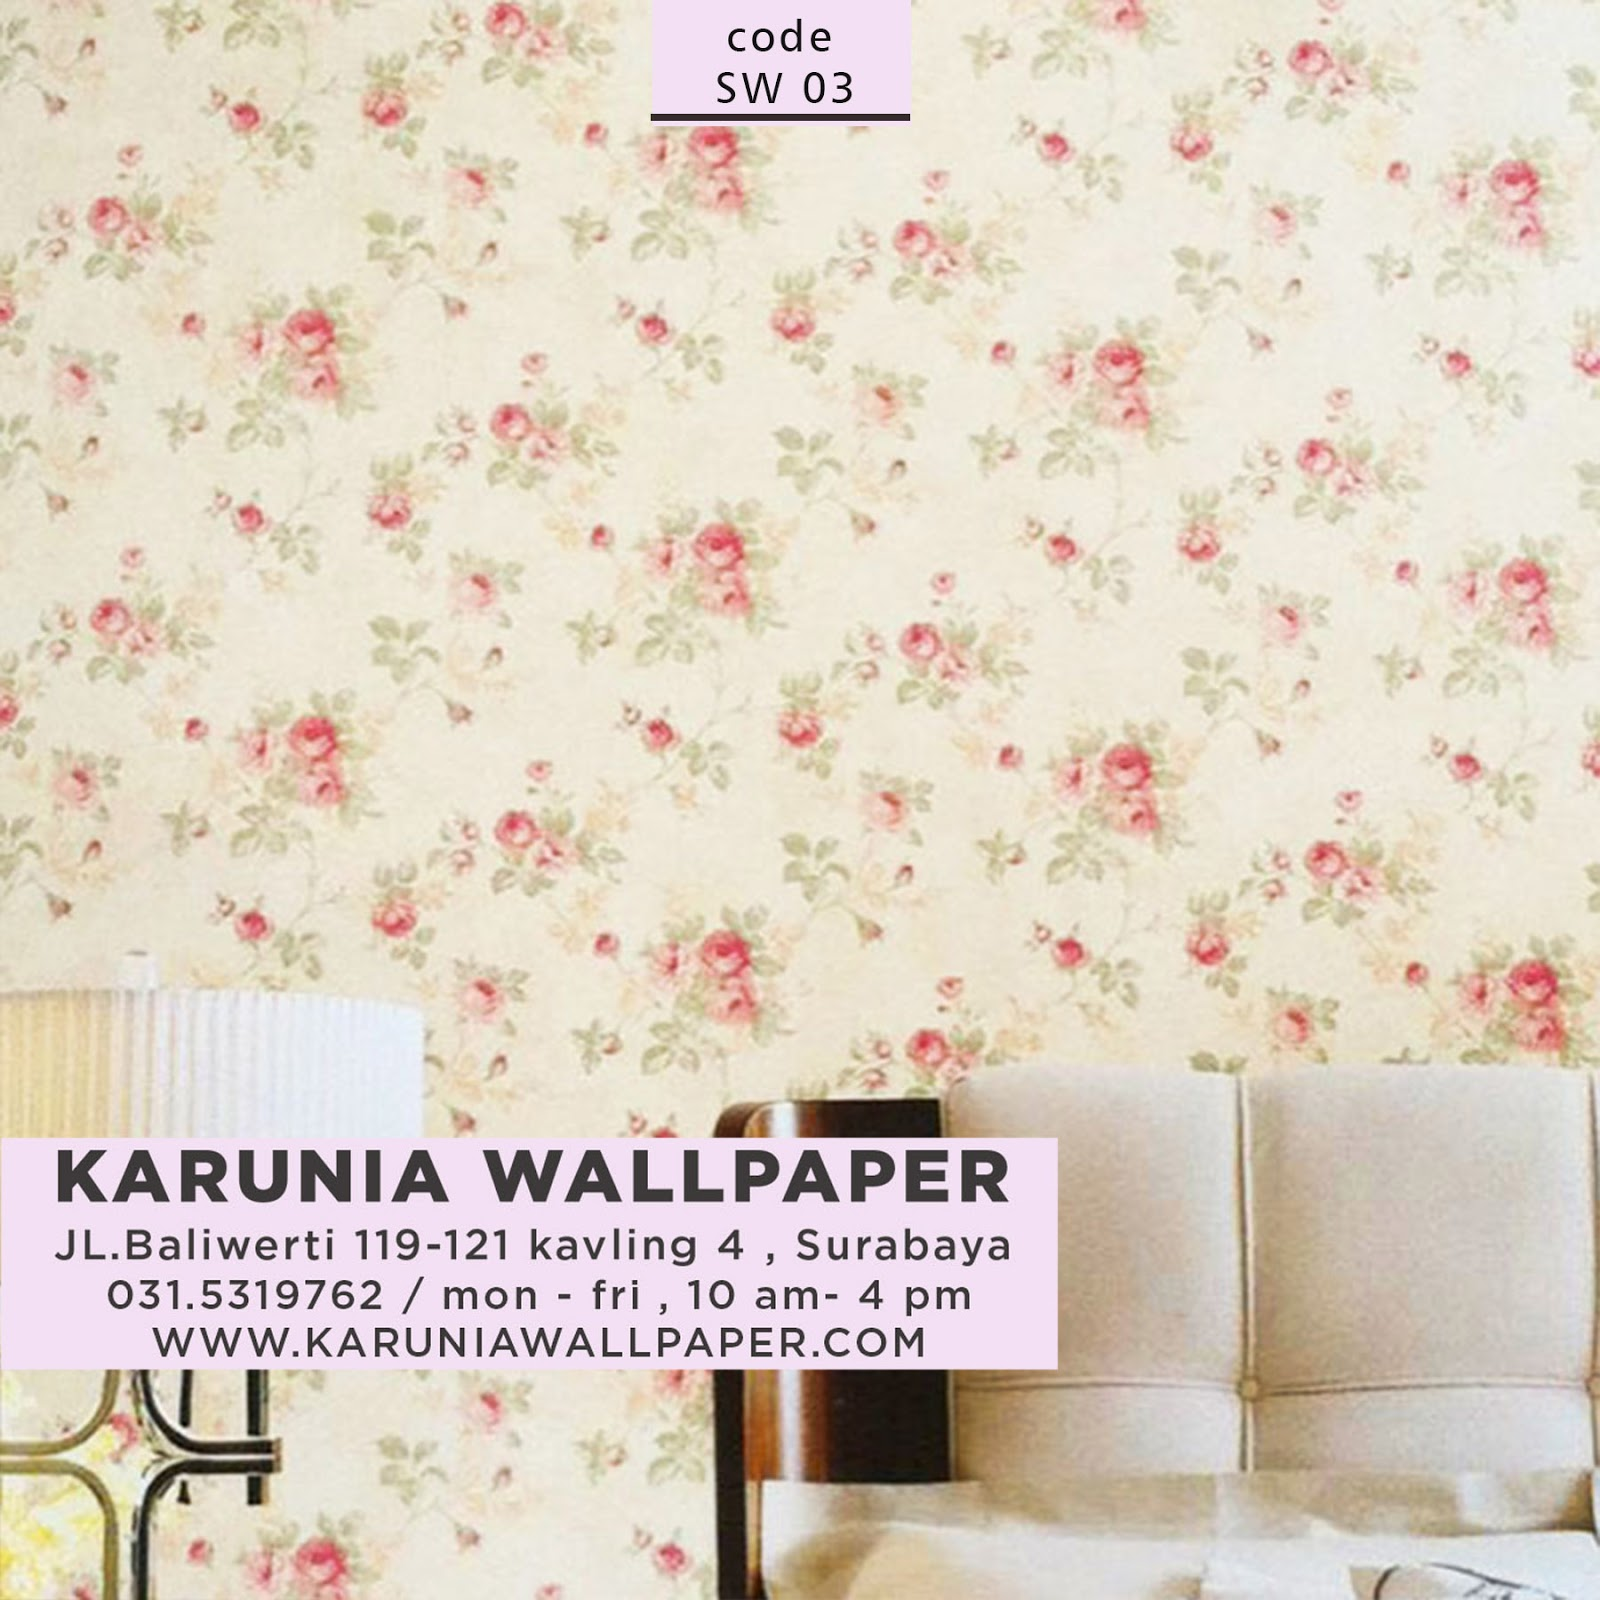 KOLEKSI WALLPAPER BUNGA KARUNIA WALLPAPER SURABAYA ERROR